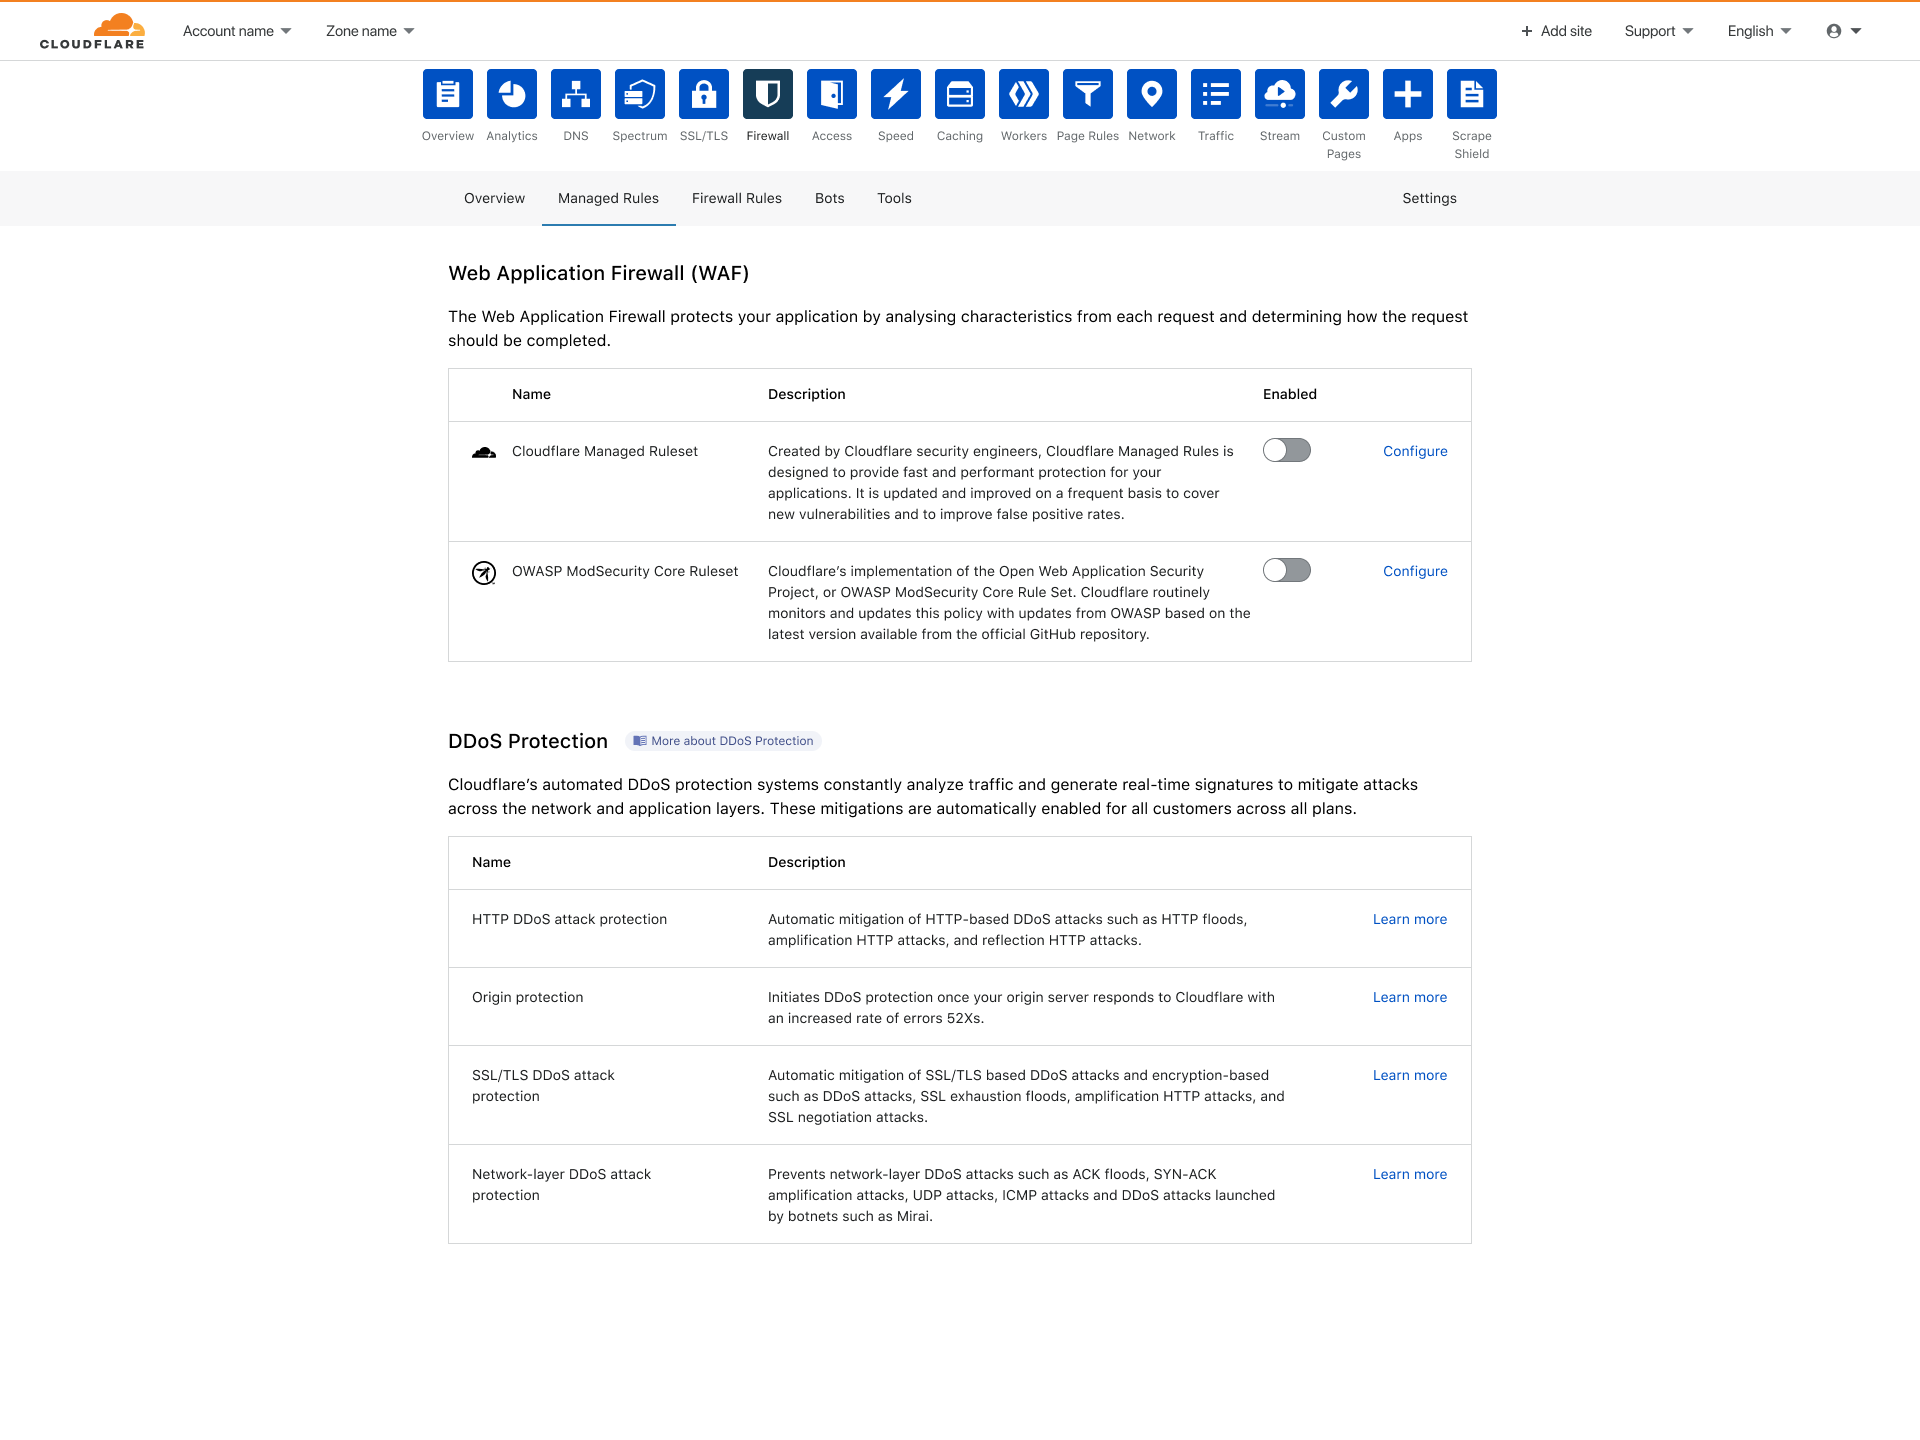 Designing the new Cloudflare Web Application Firewall